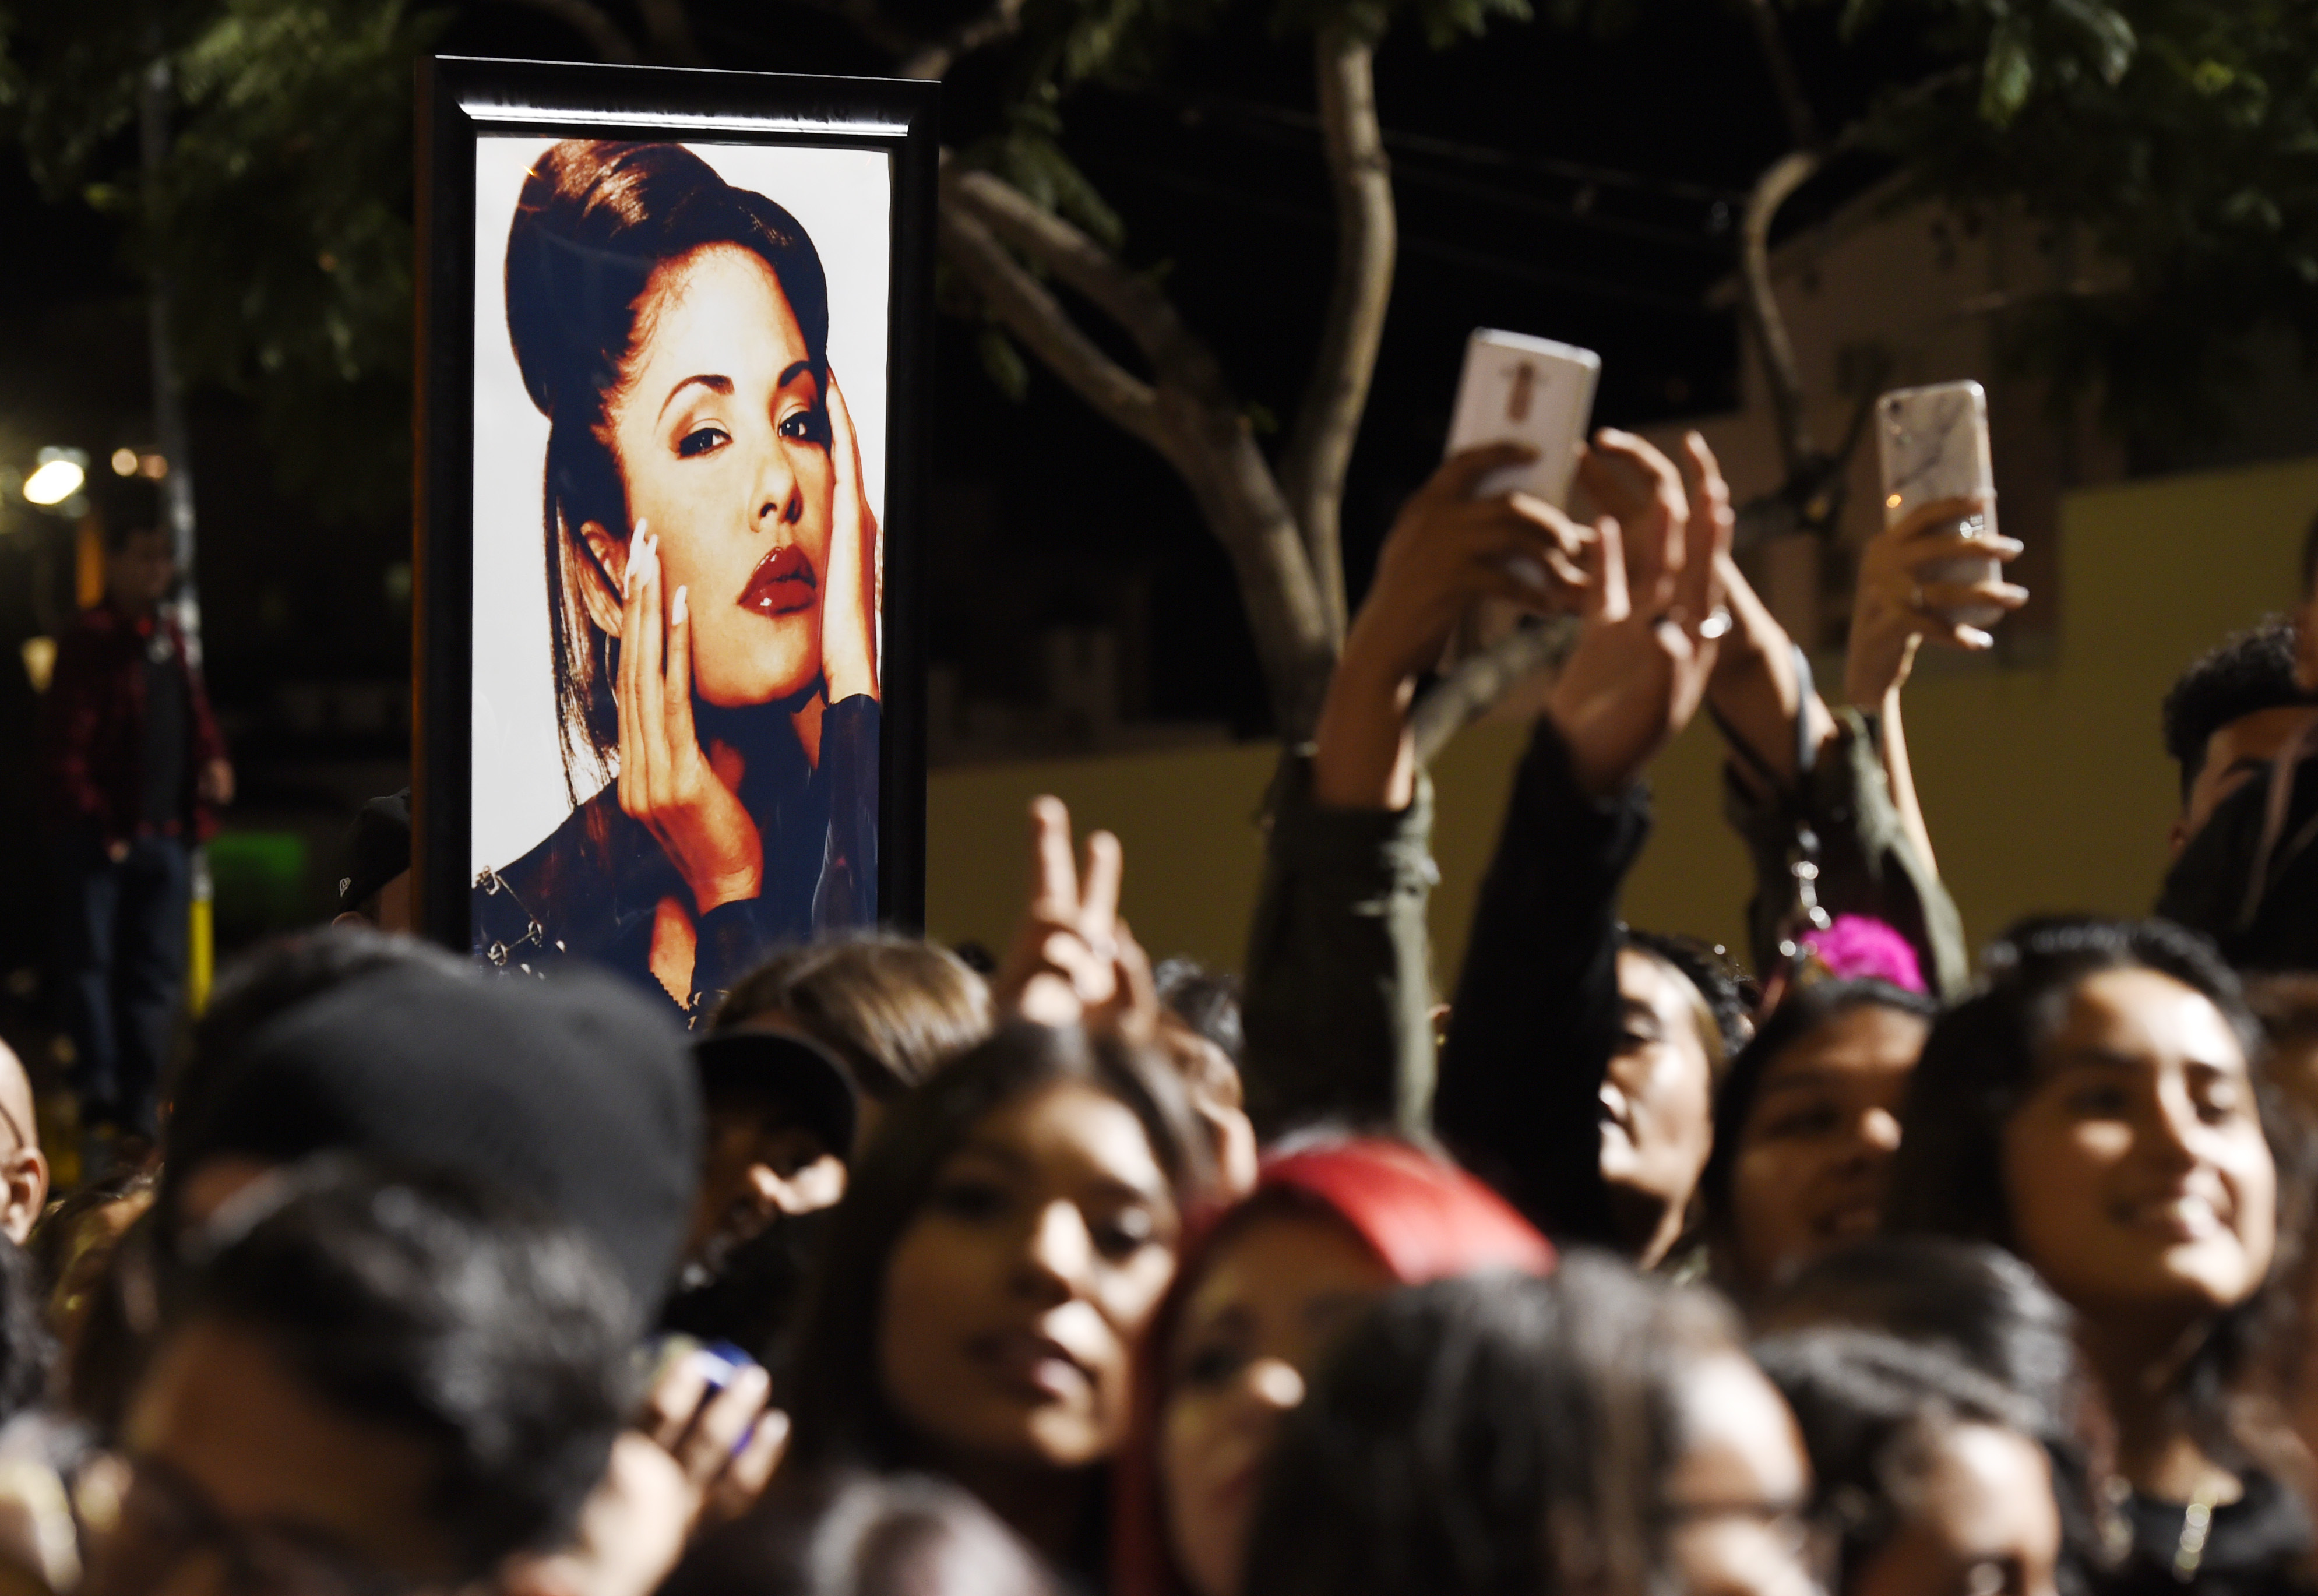 <div class='meta'><div class='origin-logo' data-origin='none'></div><span class='caption-text' data-credit='Chris Pizzello/Invision/AP'>A portrait of the late singer Selena Quintanilla is seen in the crowd following a posthumous star ceremony for Quintanilla on the Hollywood Walk of Fame.</span></div>